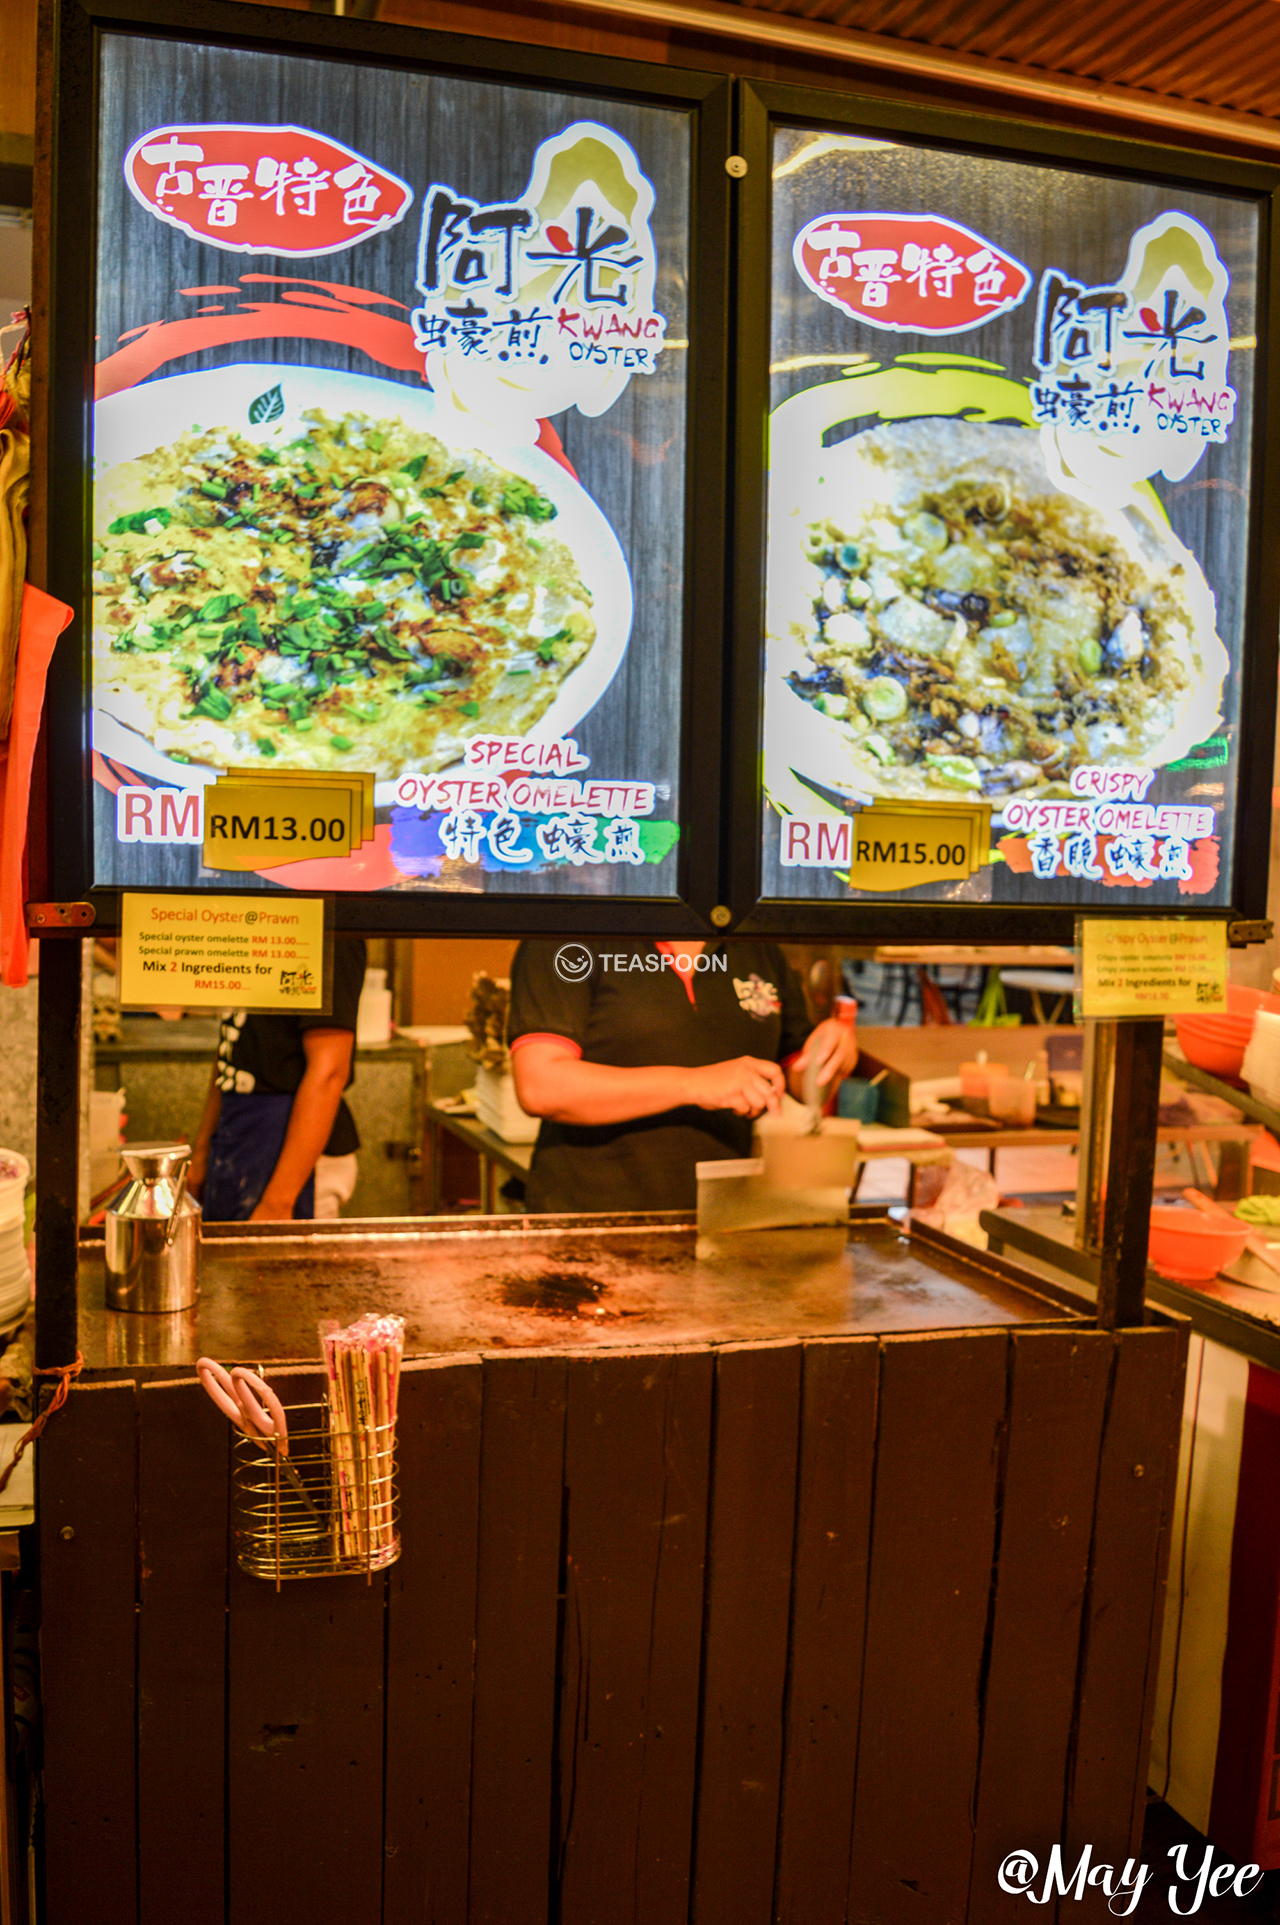 SUPPER 101 OYSTER OMELETTE STALL